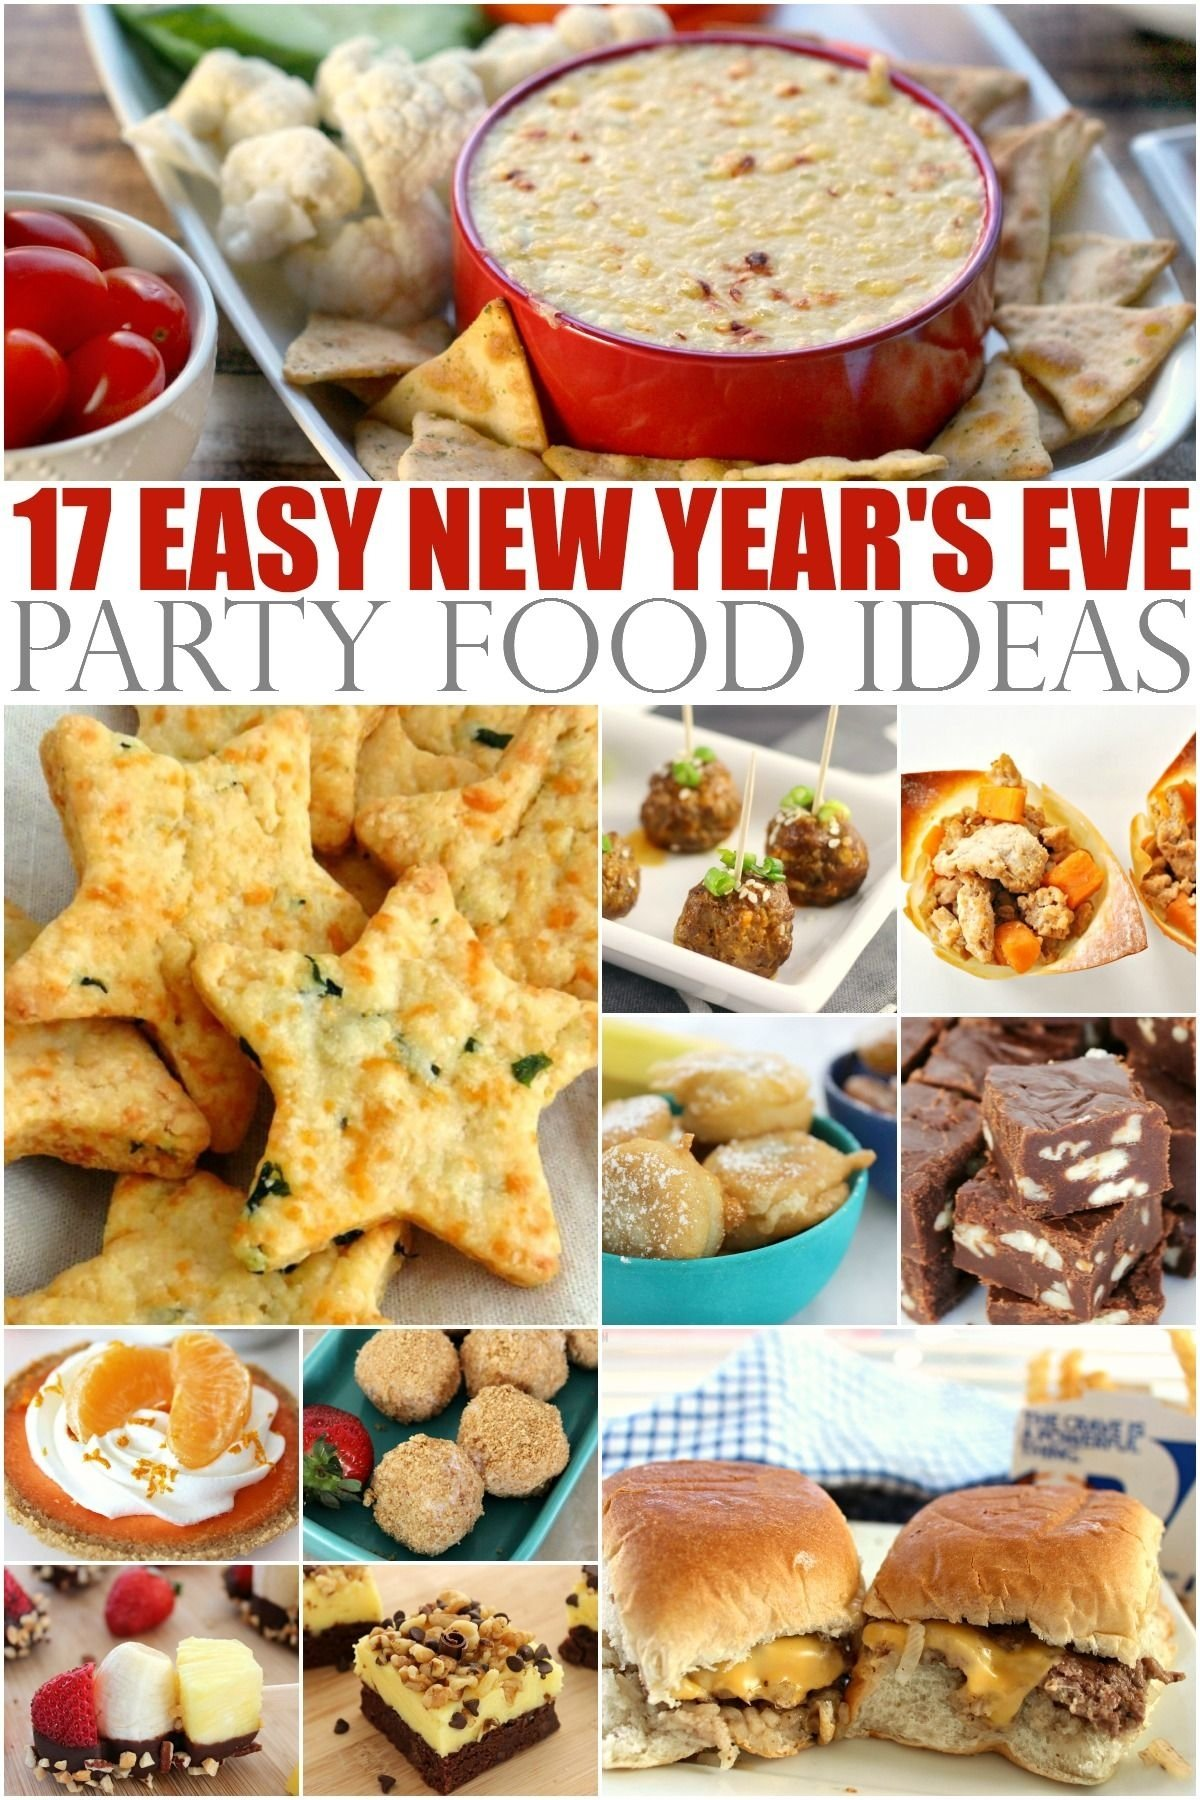 10 Spectacular New Years Eve Party Food Ideas a new years eve prep guide for the ultimate pizazz food ideas 2020